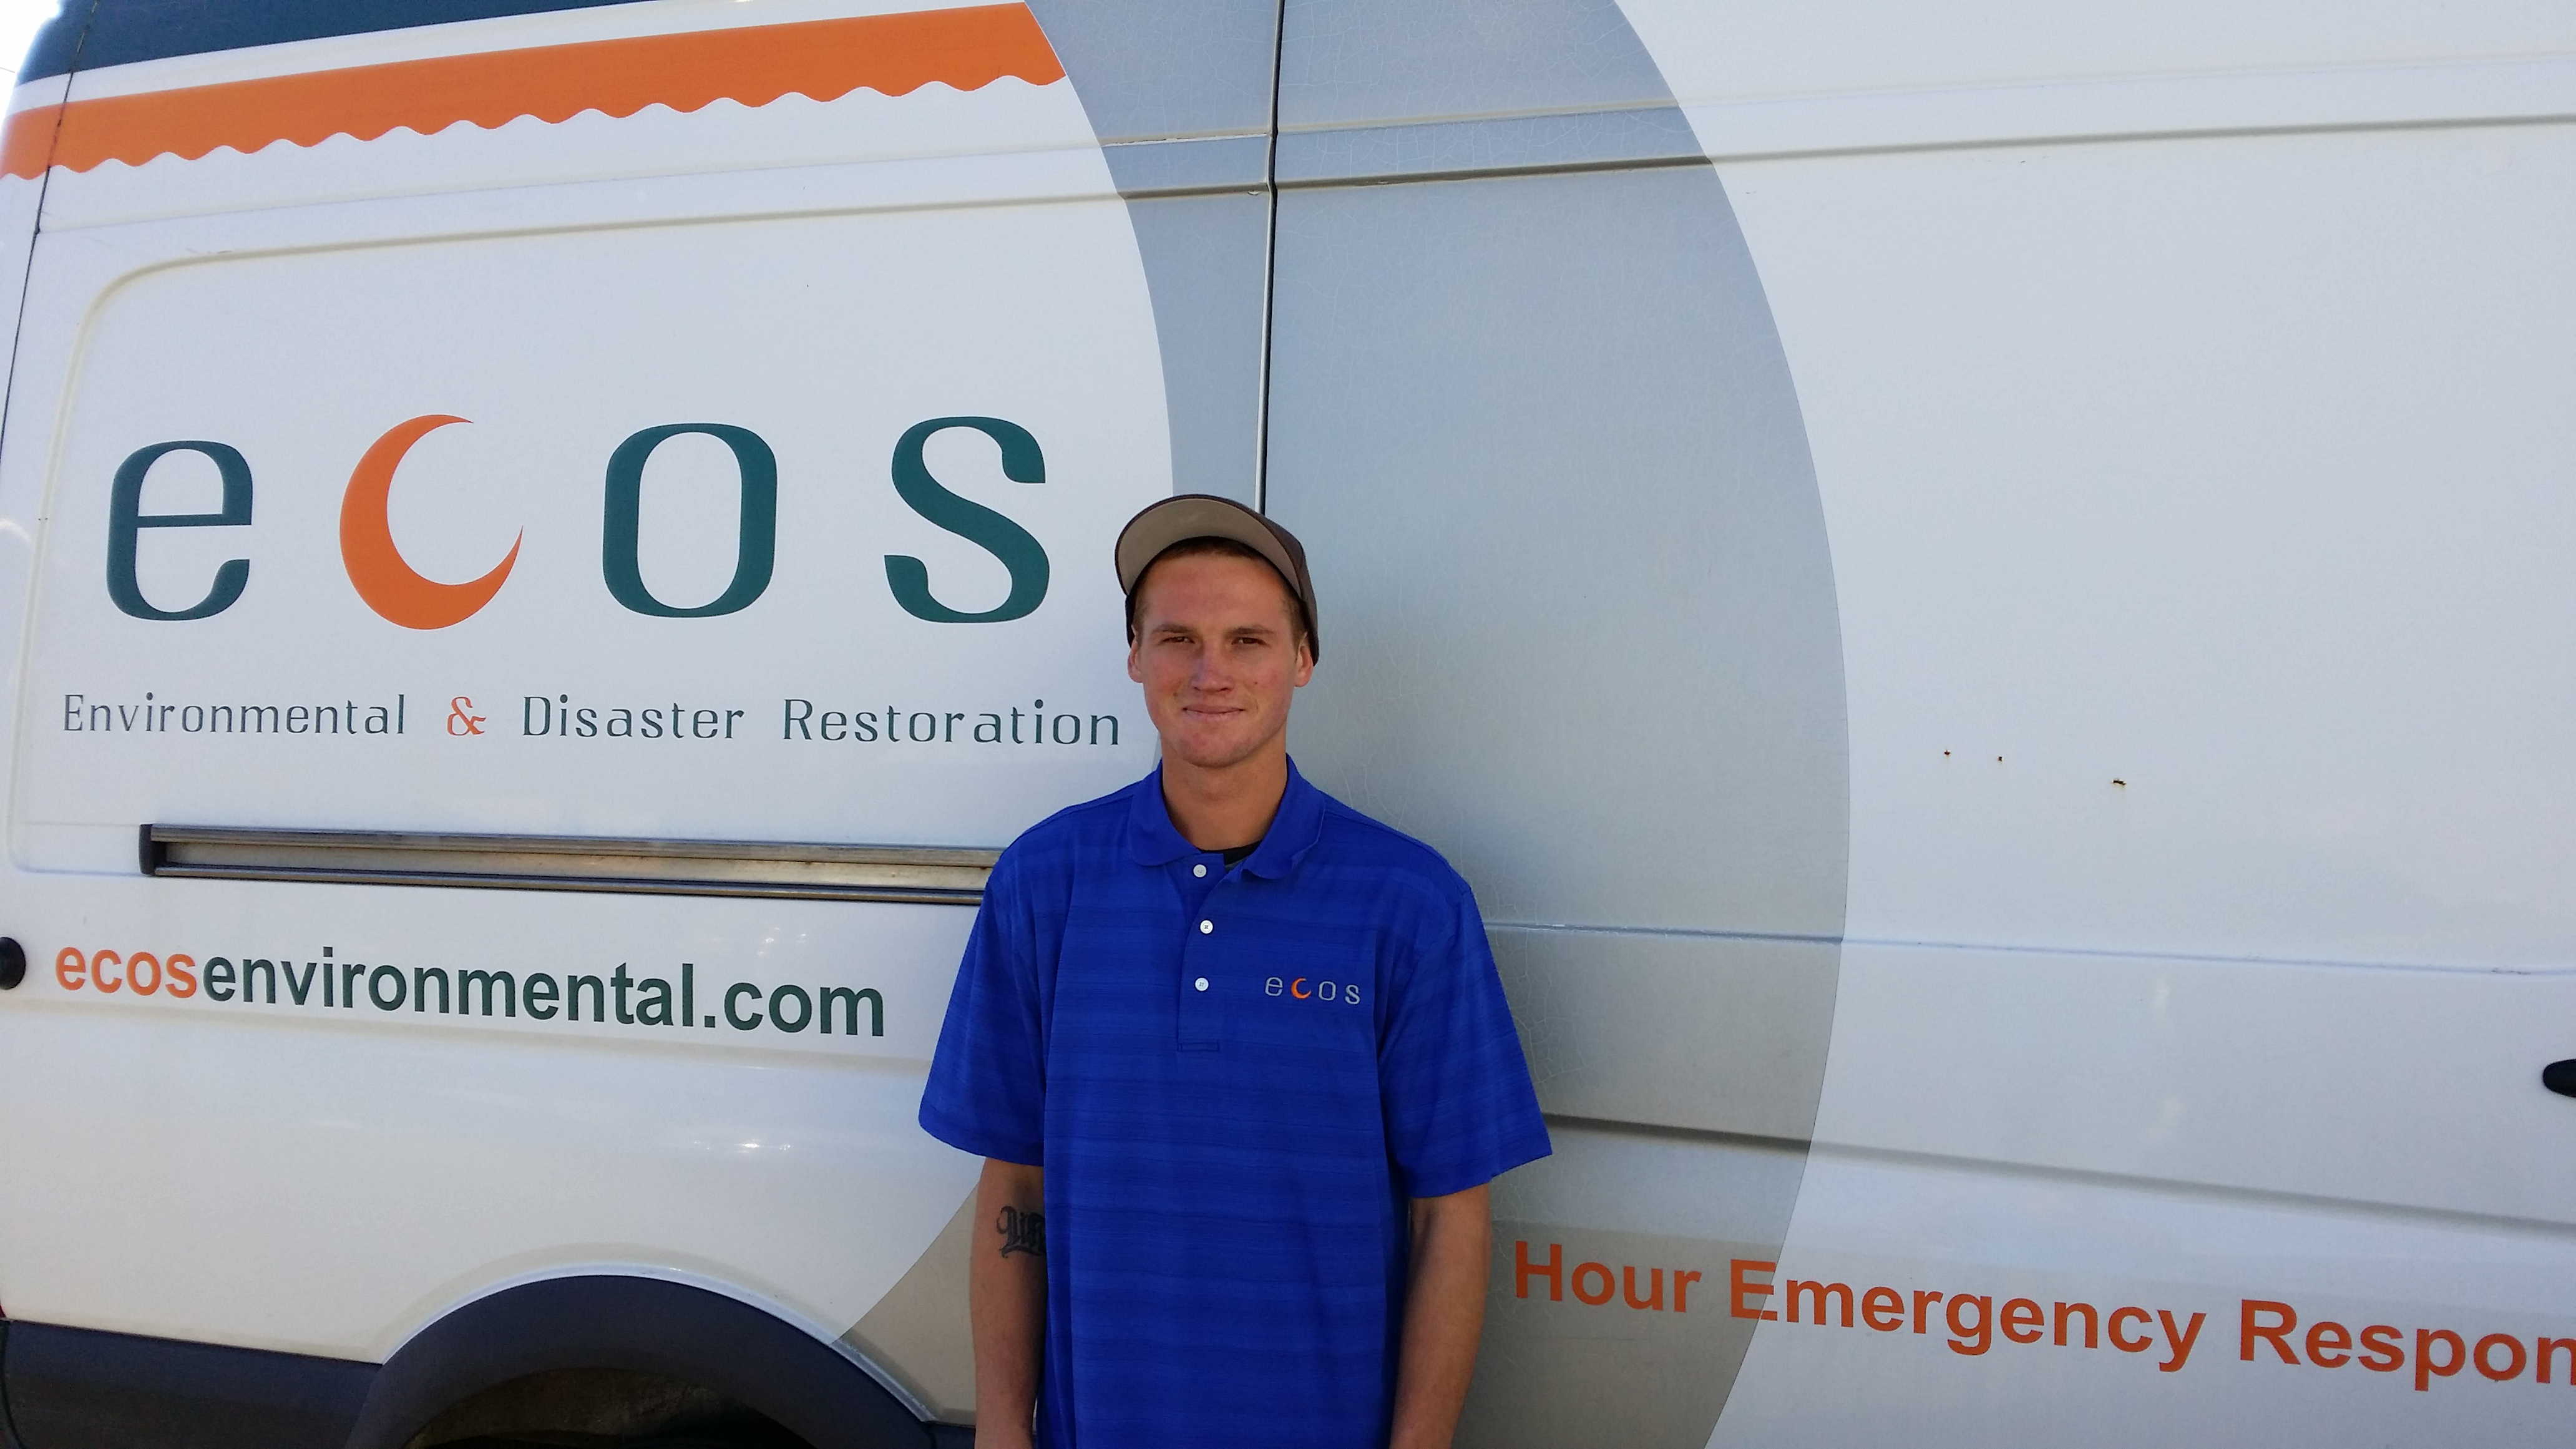 ECOS Environmental & Disaster Restoration, Inc. image 2